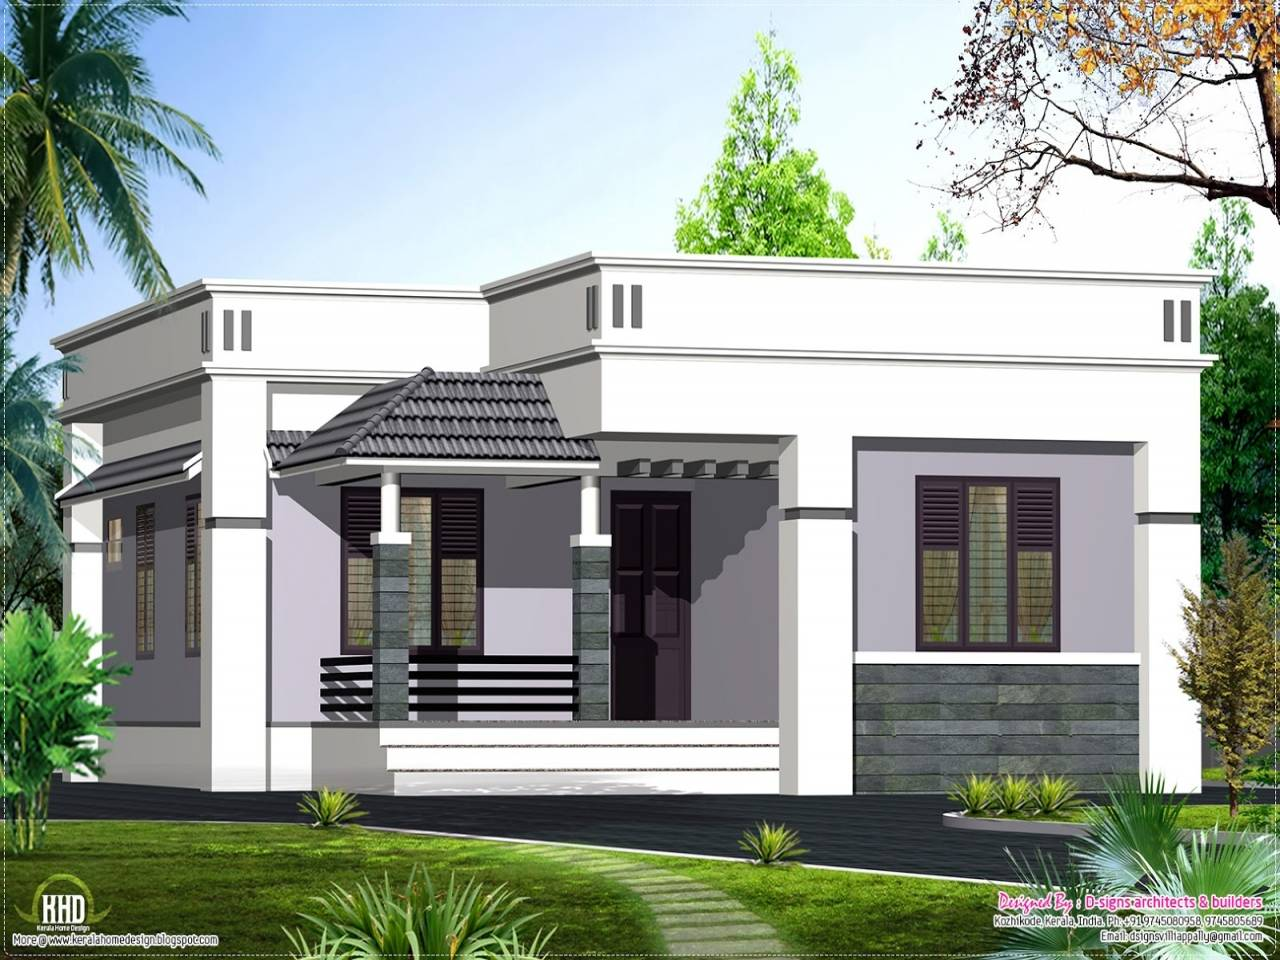 Single Floor House Plans There More House Plans 154085 Our single storey plans include home designs fit for any budget, as well as single storey homes that are suitable for a wide range of block sizes. single floor house plans there more